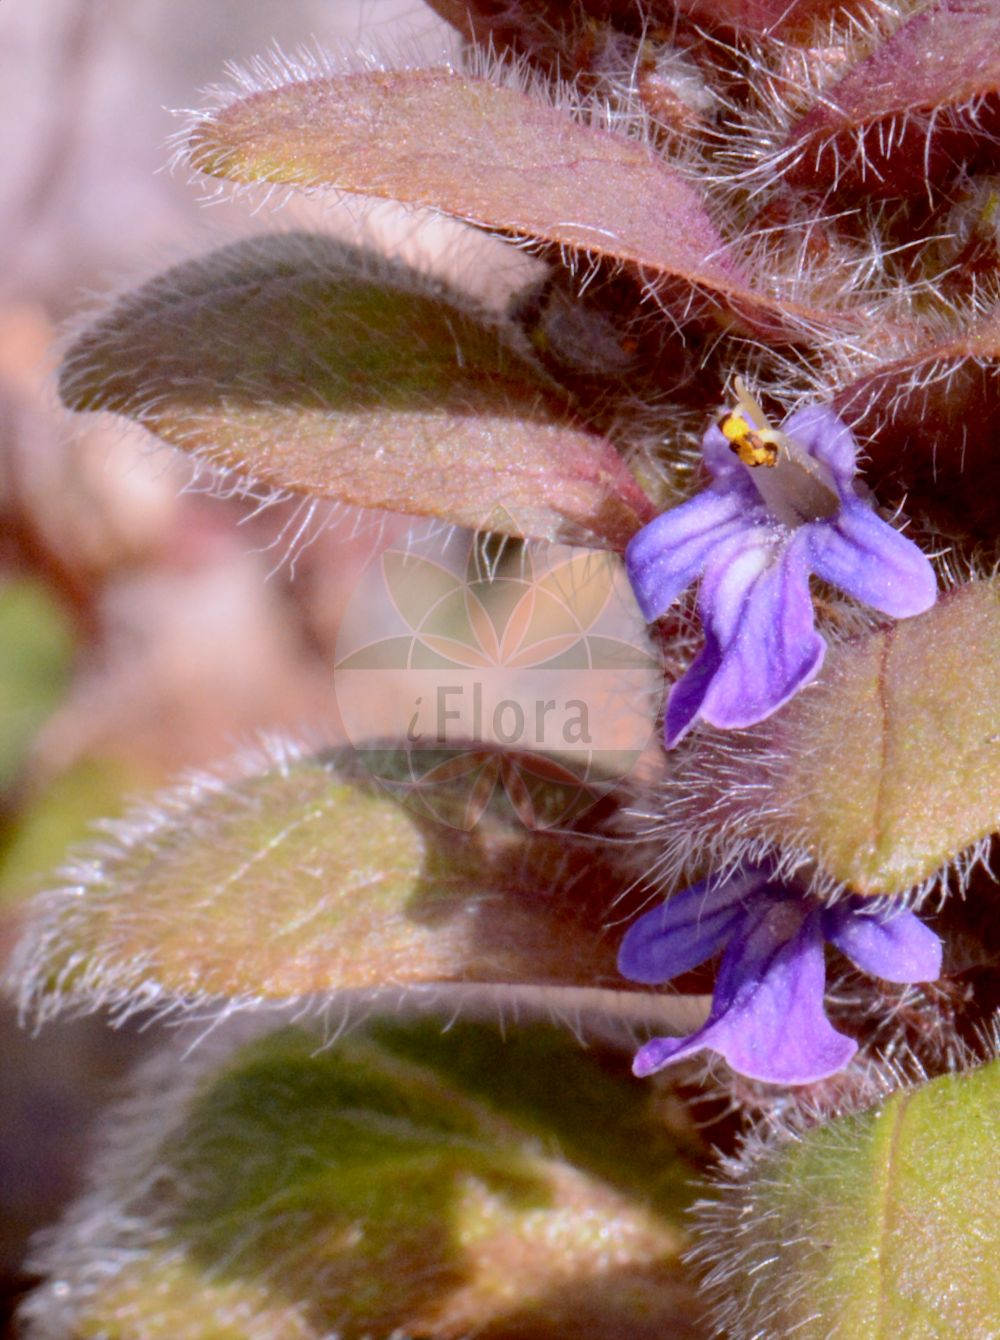 Foto von Ajuga pyramidalis (Pyramiden-Guensel - Pyramidal Bugle). Das Bild zeigt Blatt und Bluete. Das Foto wurde in Frankfurt, Hessen, Deutschland aufgenommen. ---- Photo of Ajuga pyramidalis (Pyramiden-Guensel - Pyramidal Bugle).The image is showing leaf and flower.The picture was taken in Frankfurt, Hesse, Germany.(Ajuga pyramidalis,Pyramiden-Guensel,Pyramidal Bugle,Bugula pyramidalis,Bulga pyramidalis,Teucrium pyramidale,Limestone Bugle,Ajuga,Guensel,Bugle,Lamiaceae,Lippenbluetengewaechse;Lippenbluetler,Nettle family,Blatt,Bluete,leaf,flower)